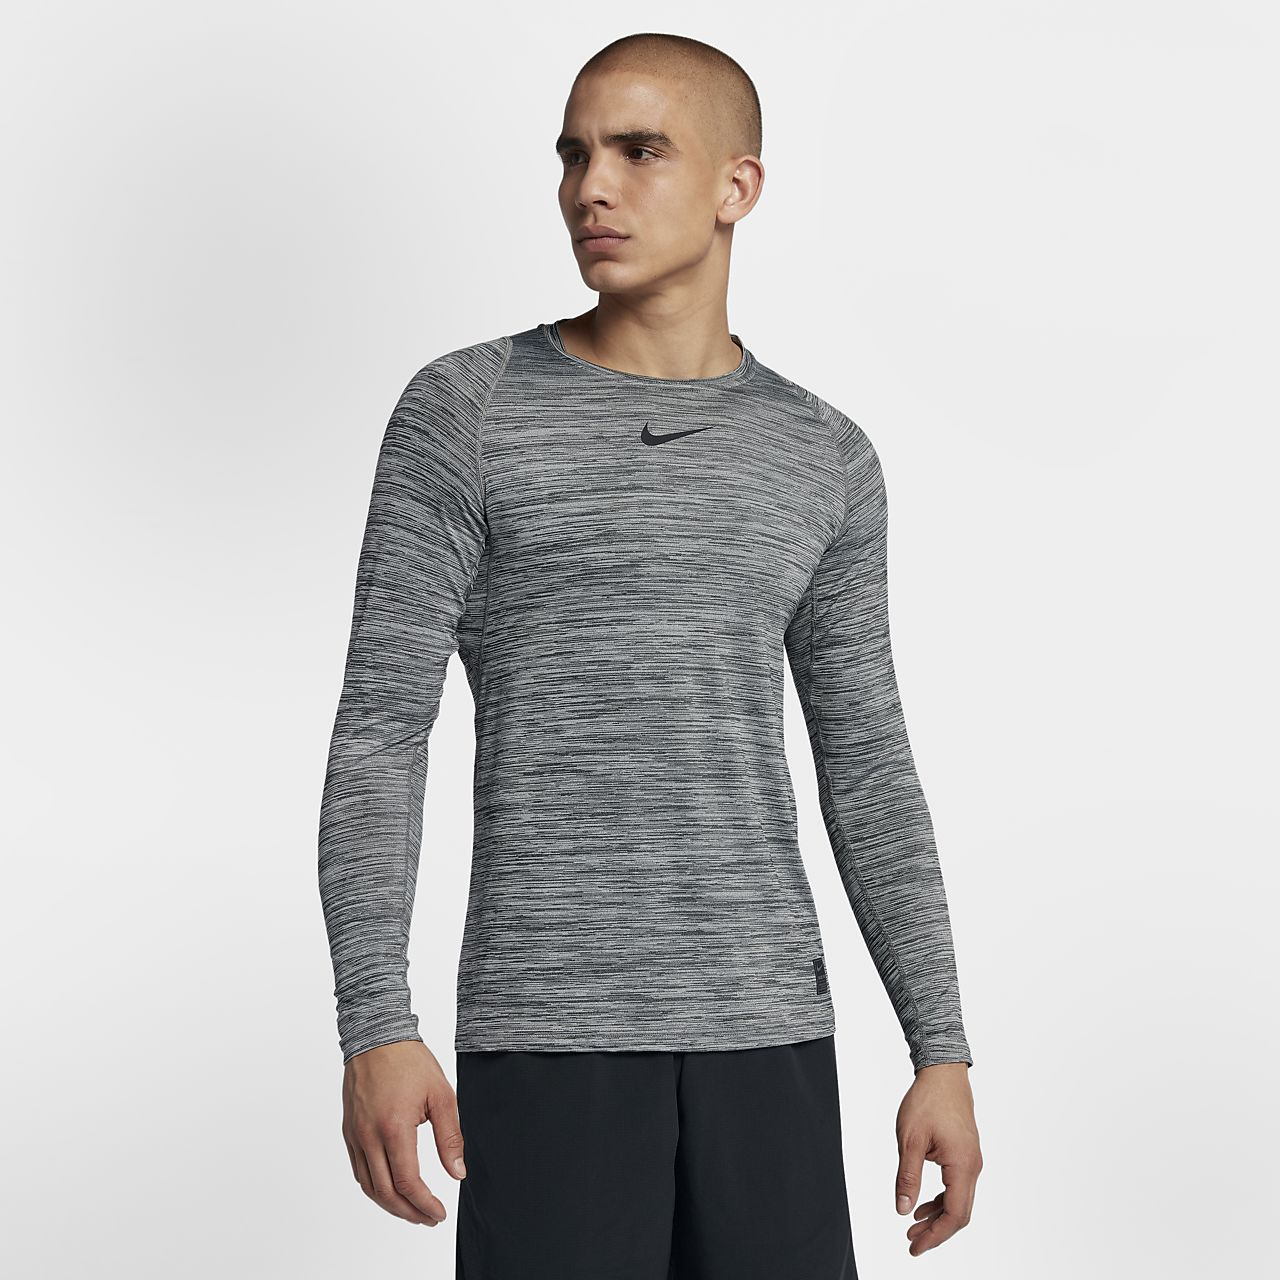 012371fb8e935 Nike Pro Fitted Men's Long Sleeve Training Top. Nike.com